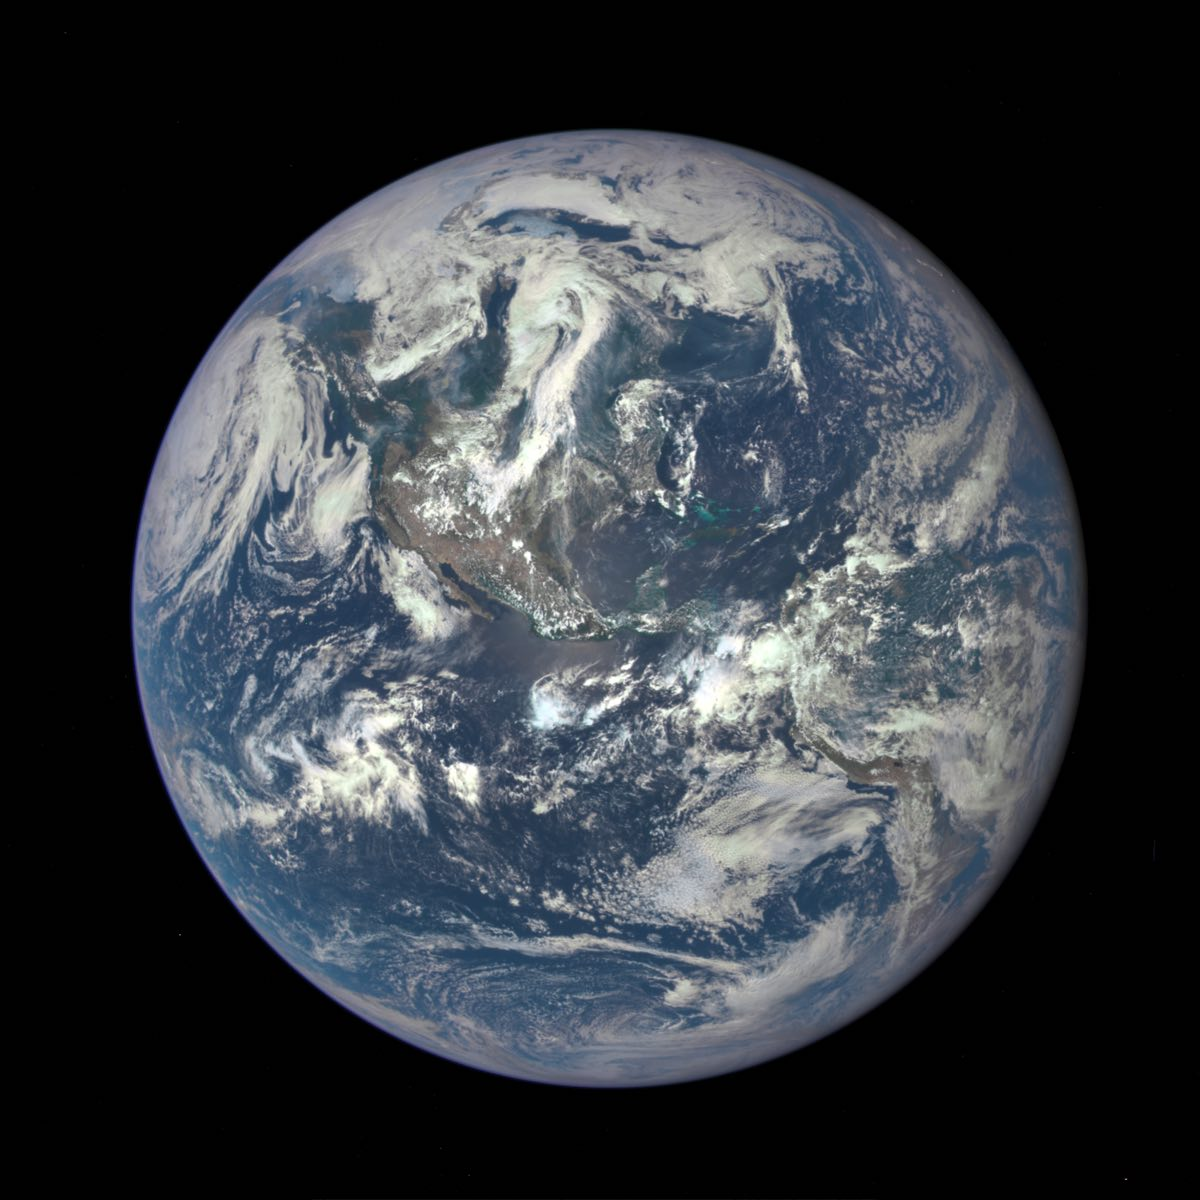 earth view from other planets - photo #27